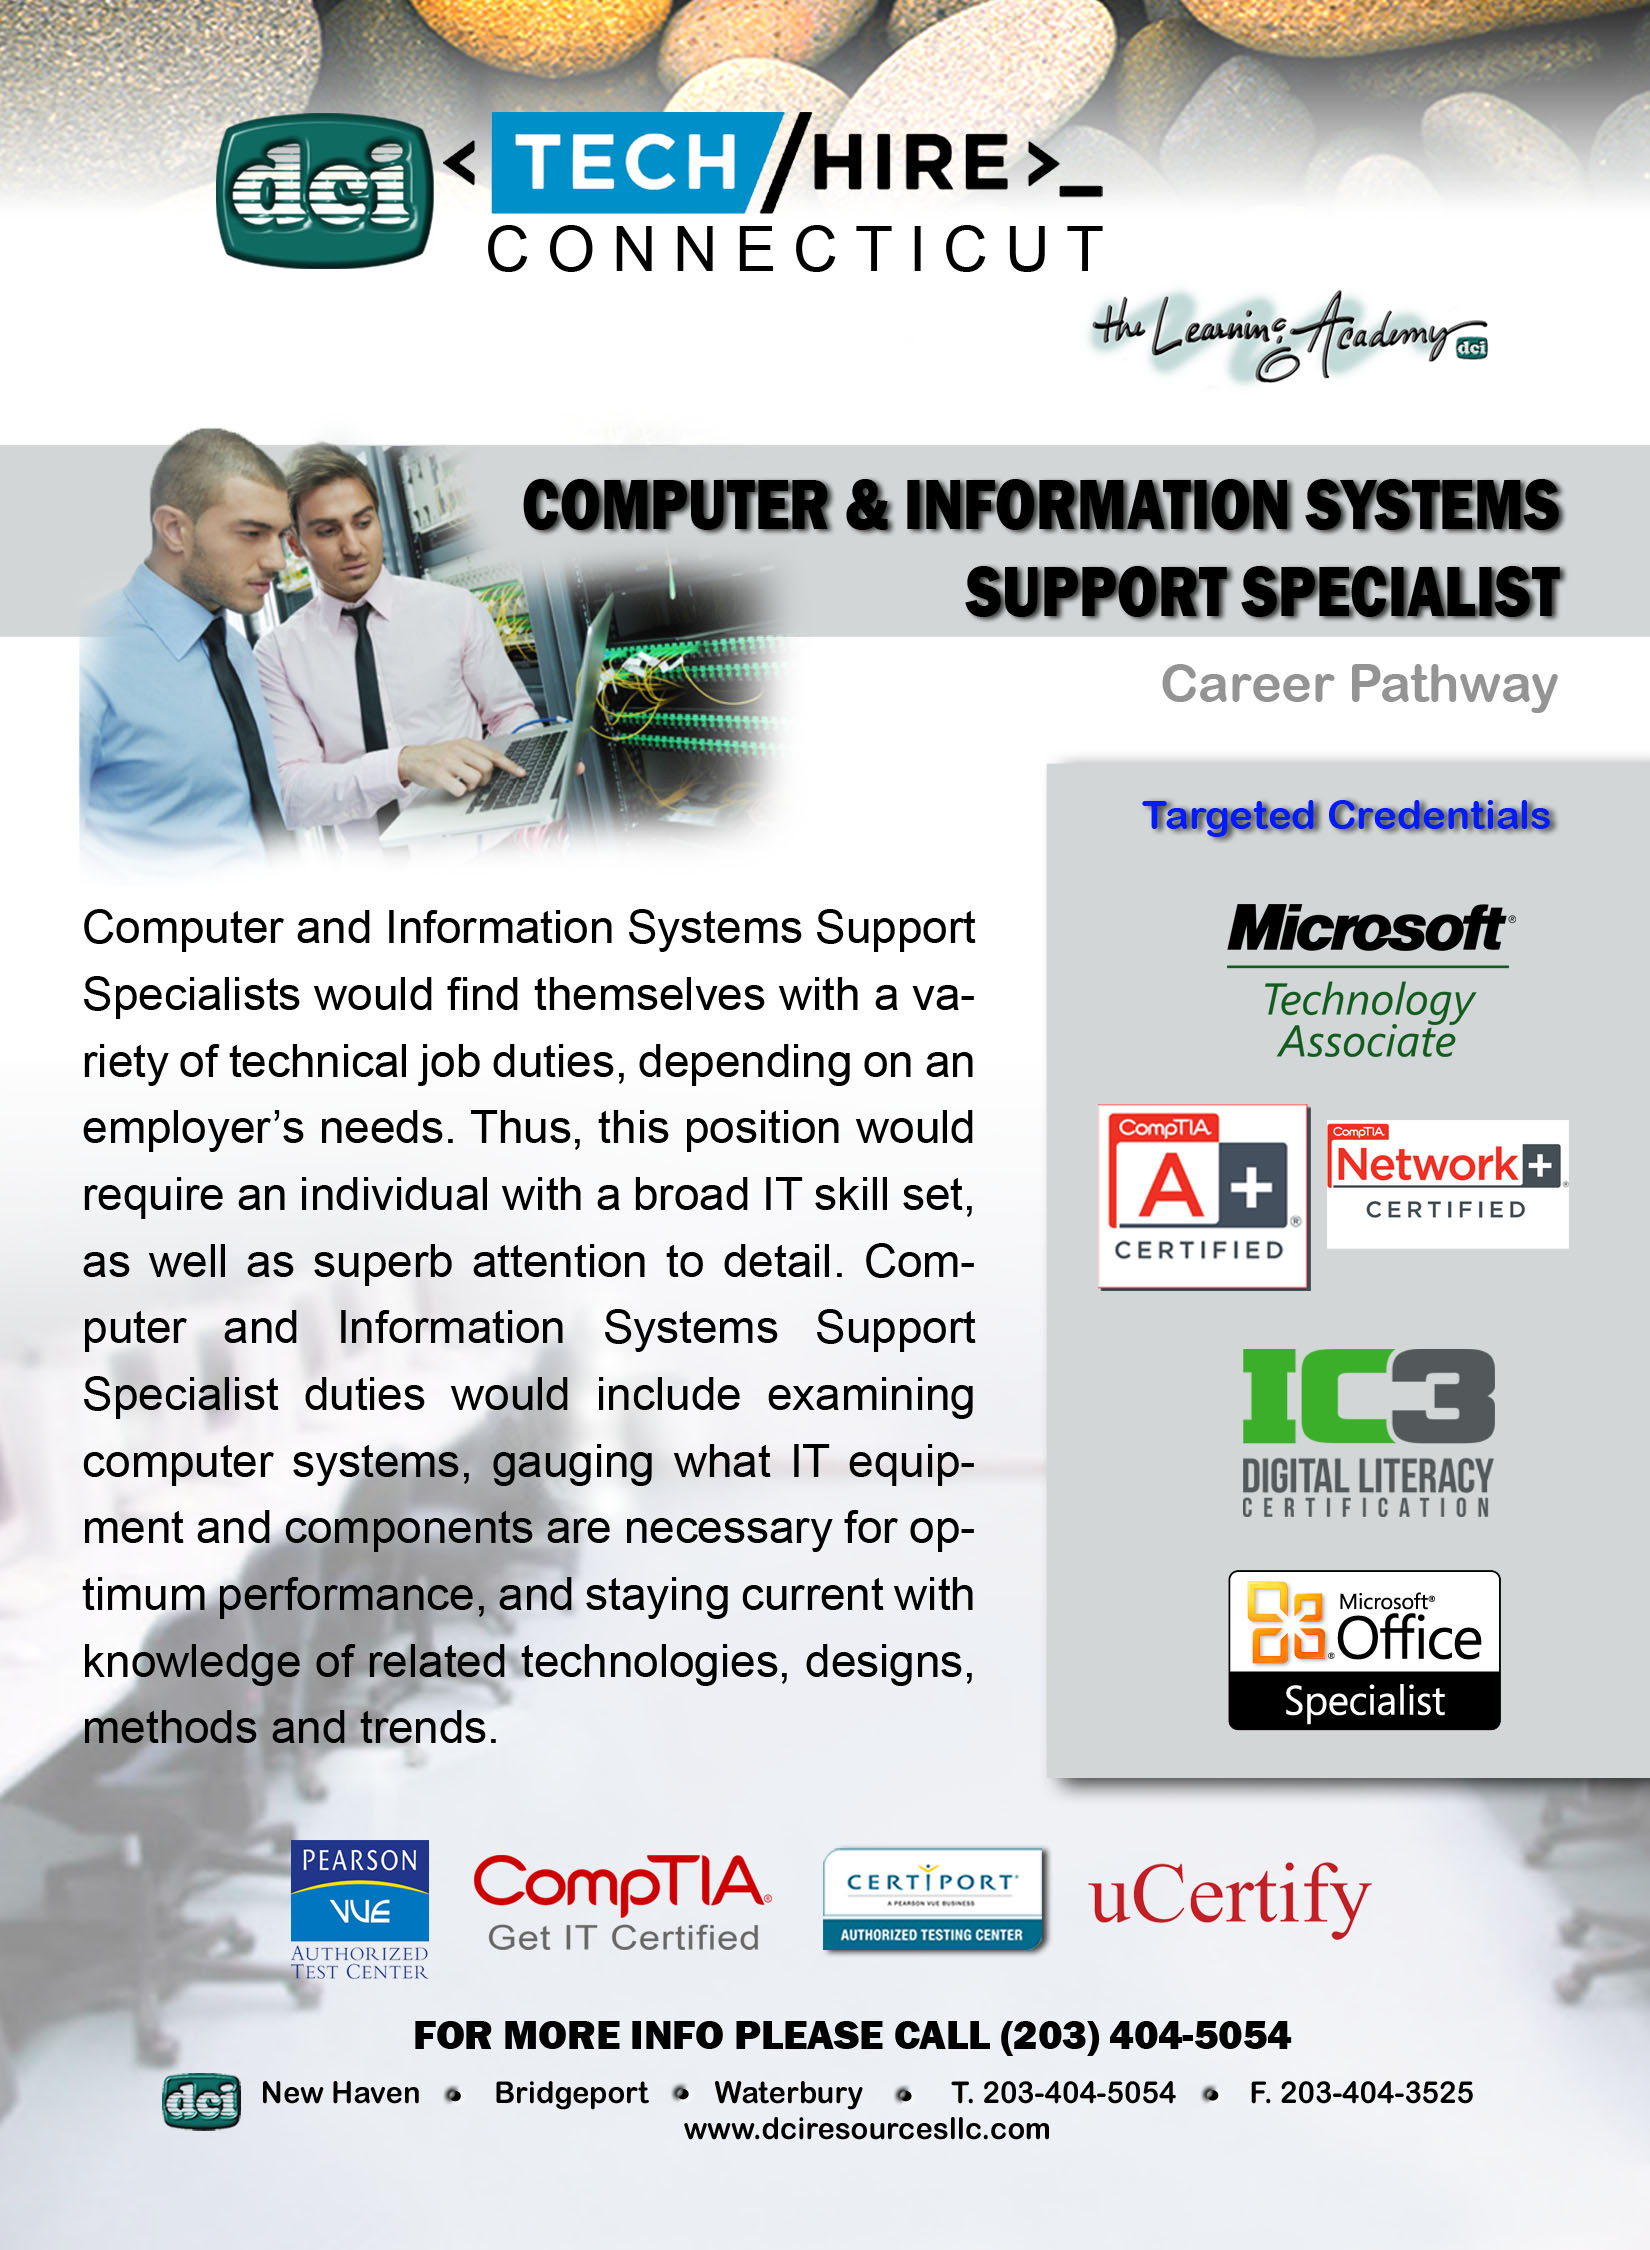 Computer & Information Systems Support Specialist